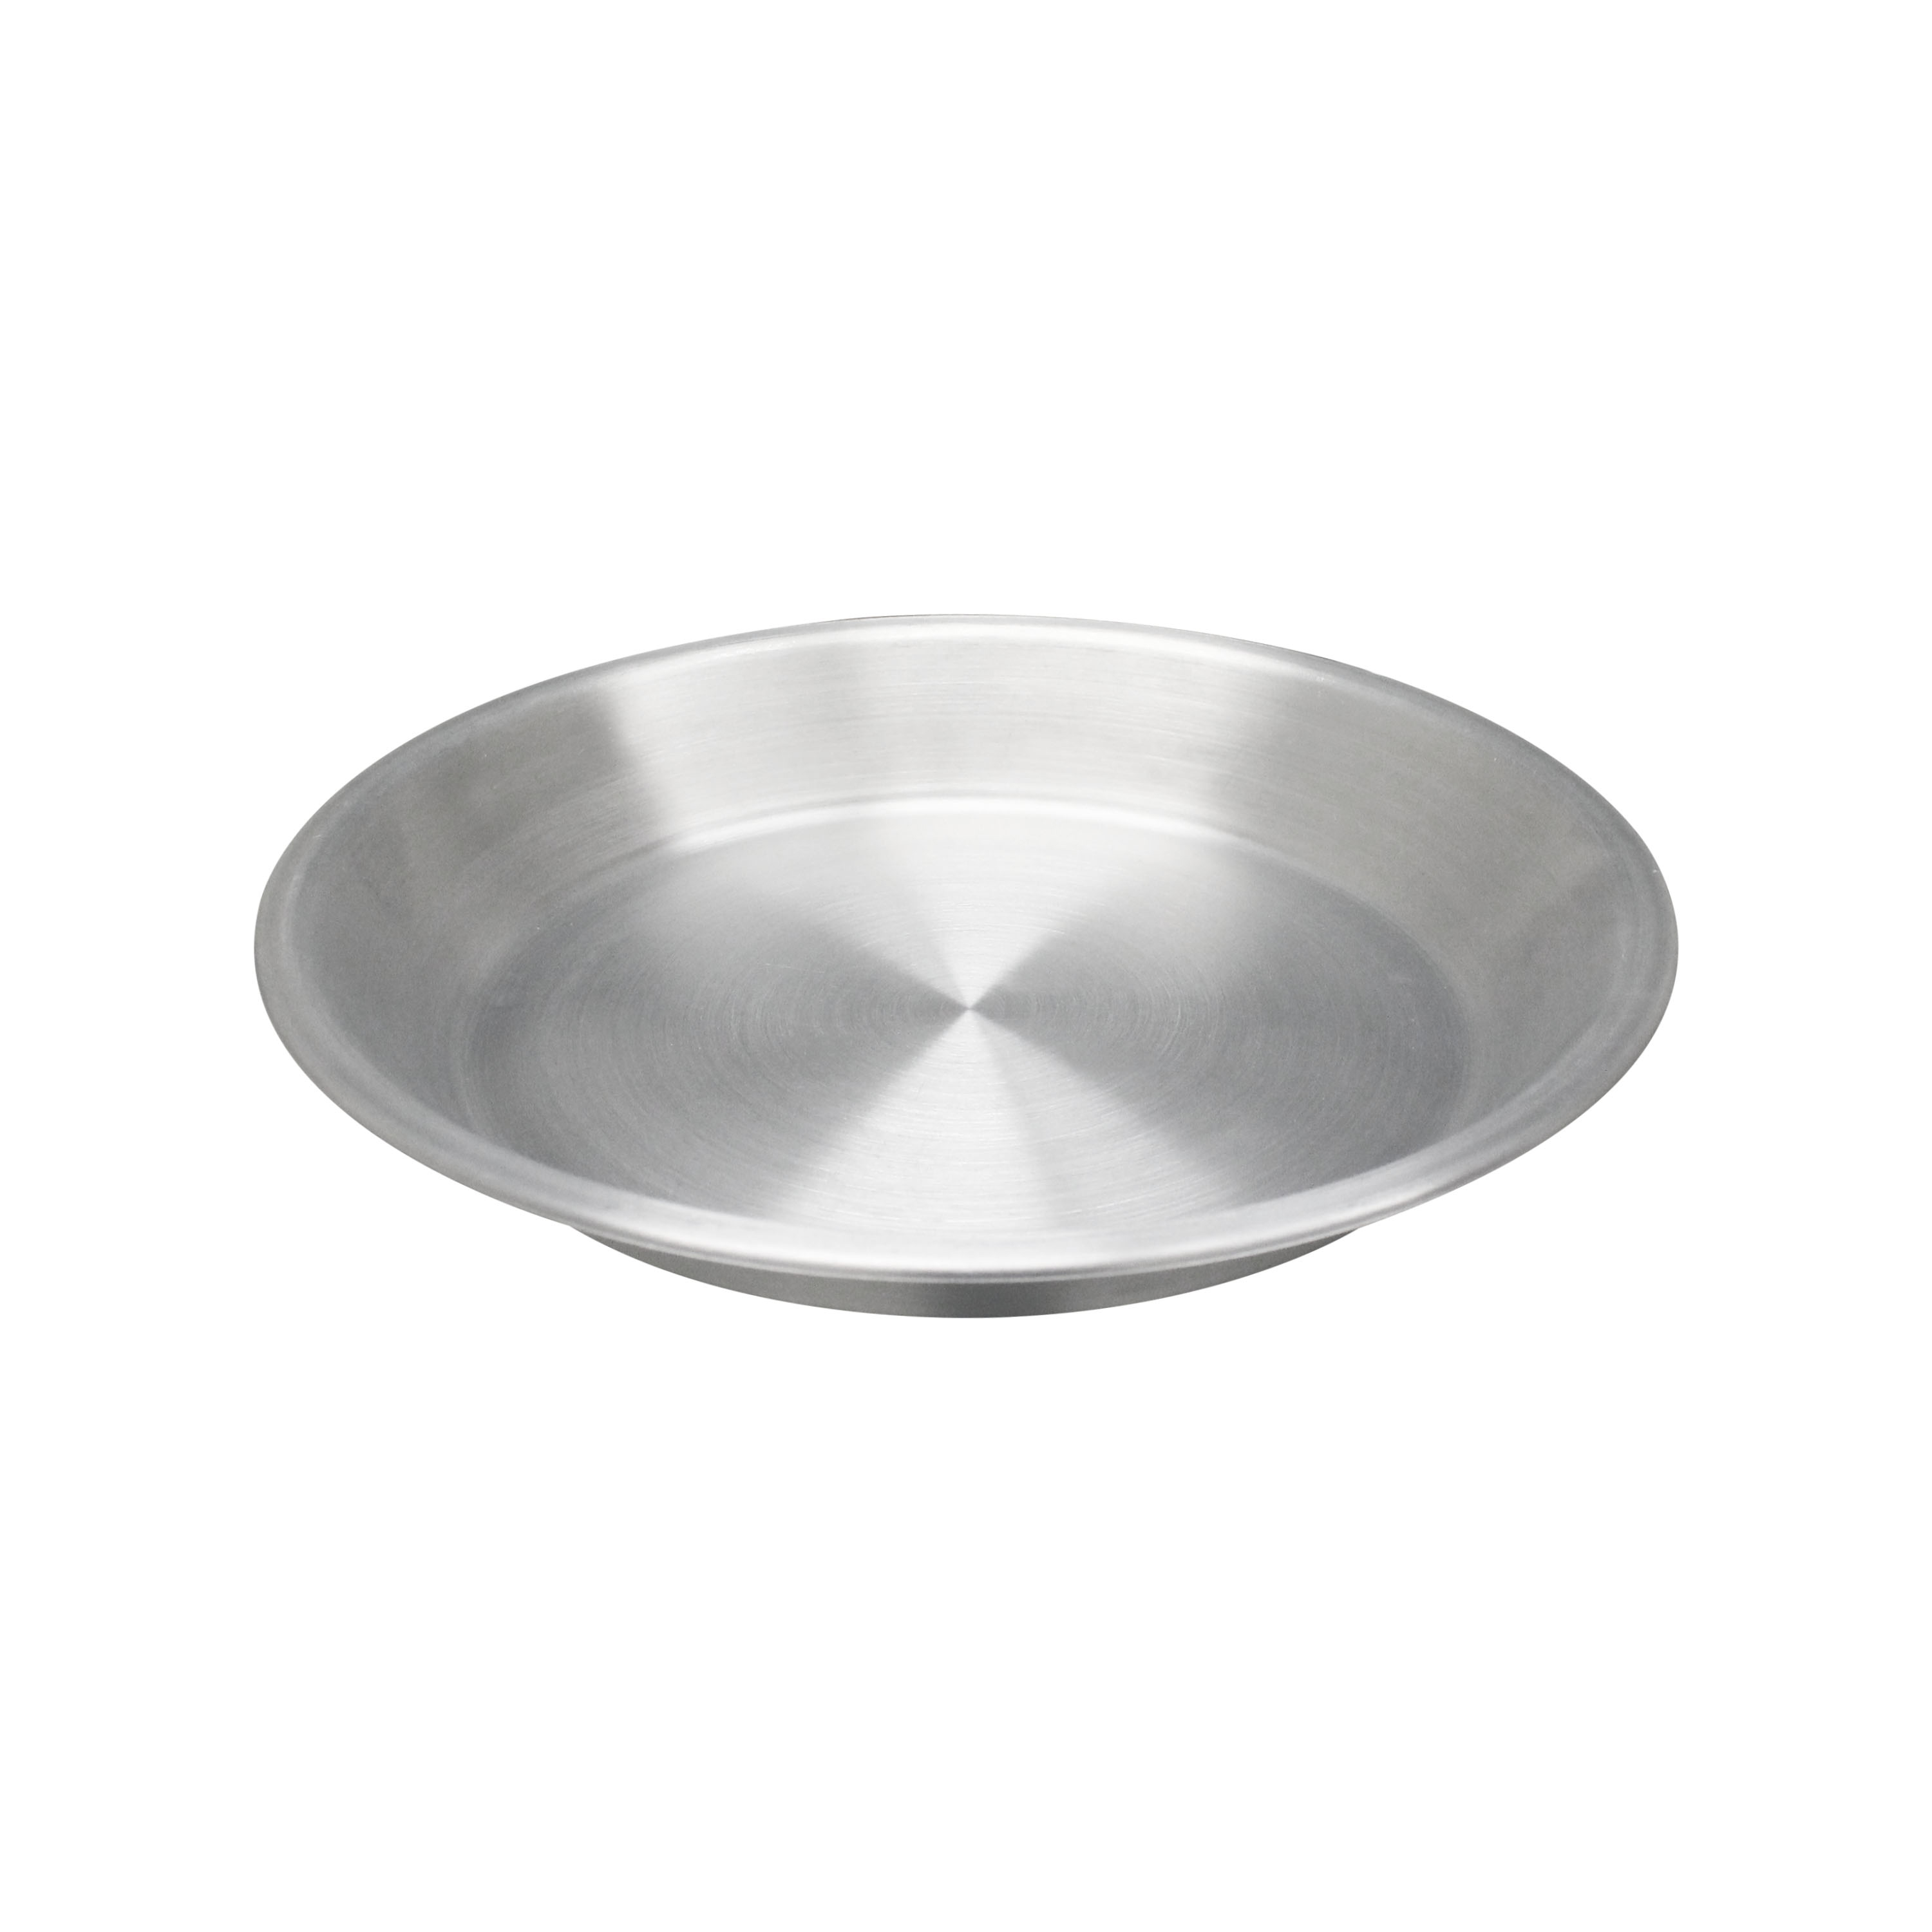 "12"" Pie Pan, Aluminum, 1.0 Mm, Comes In Each by Thunder Group"